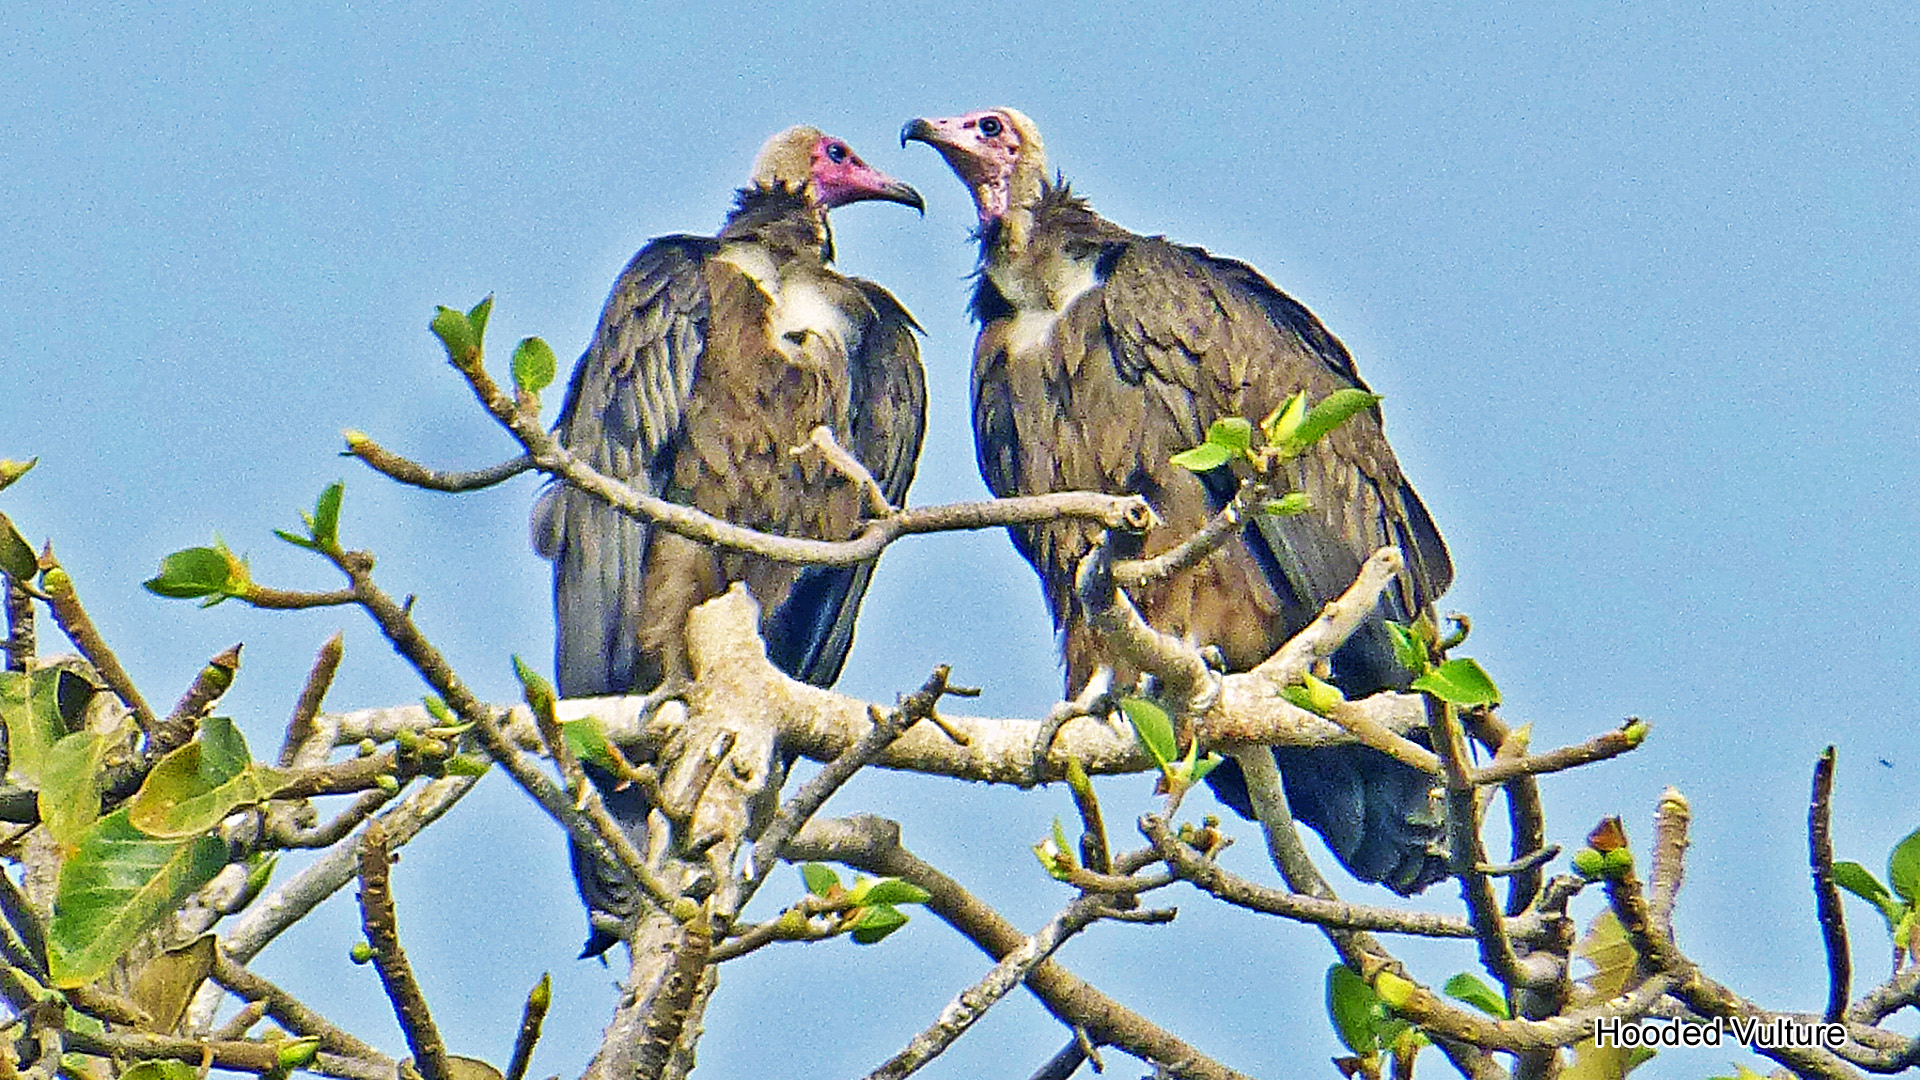 4f, Hooded Vulture